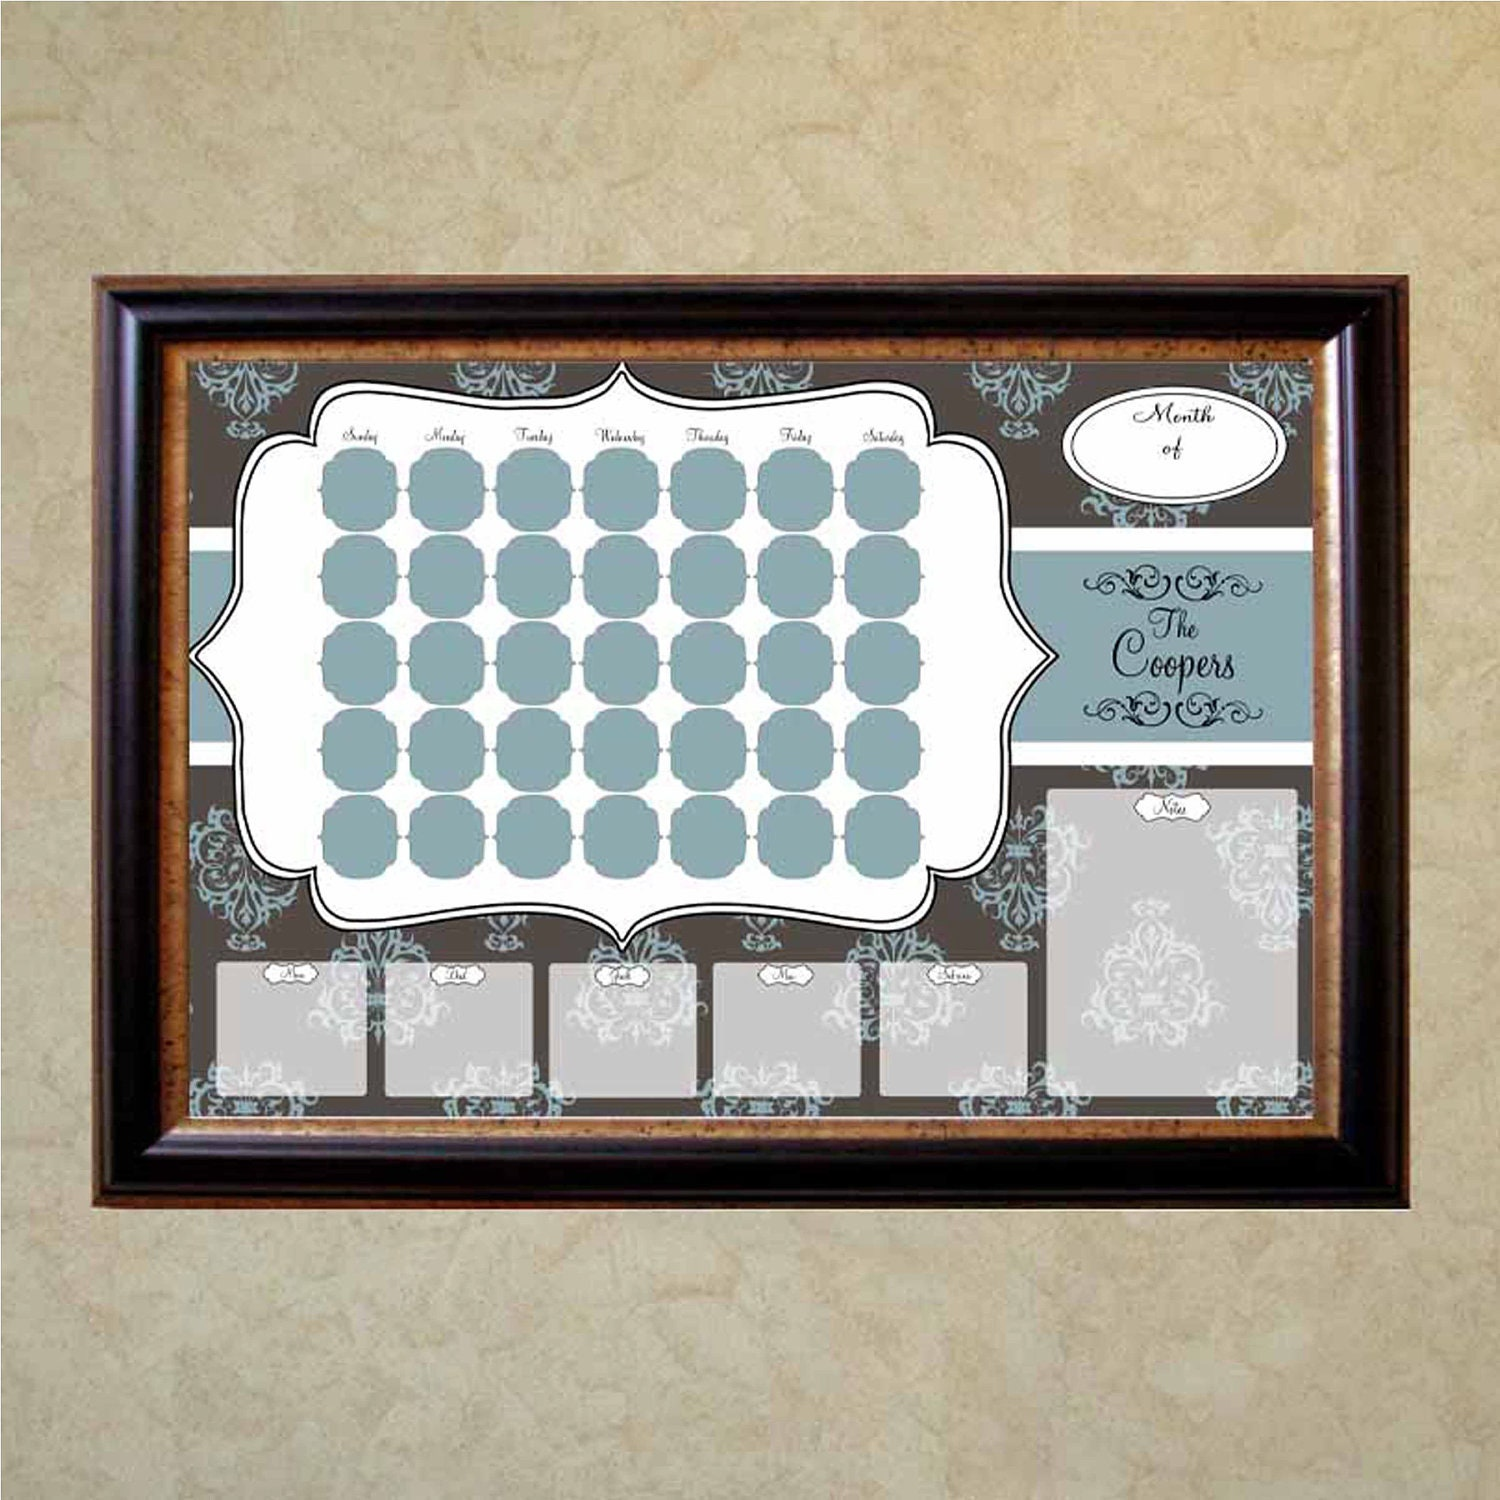 Items Similar To Personalized Wall Calendar Dry Erase